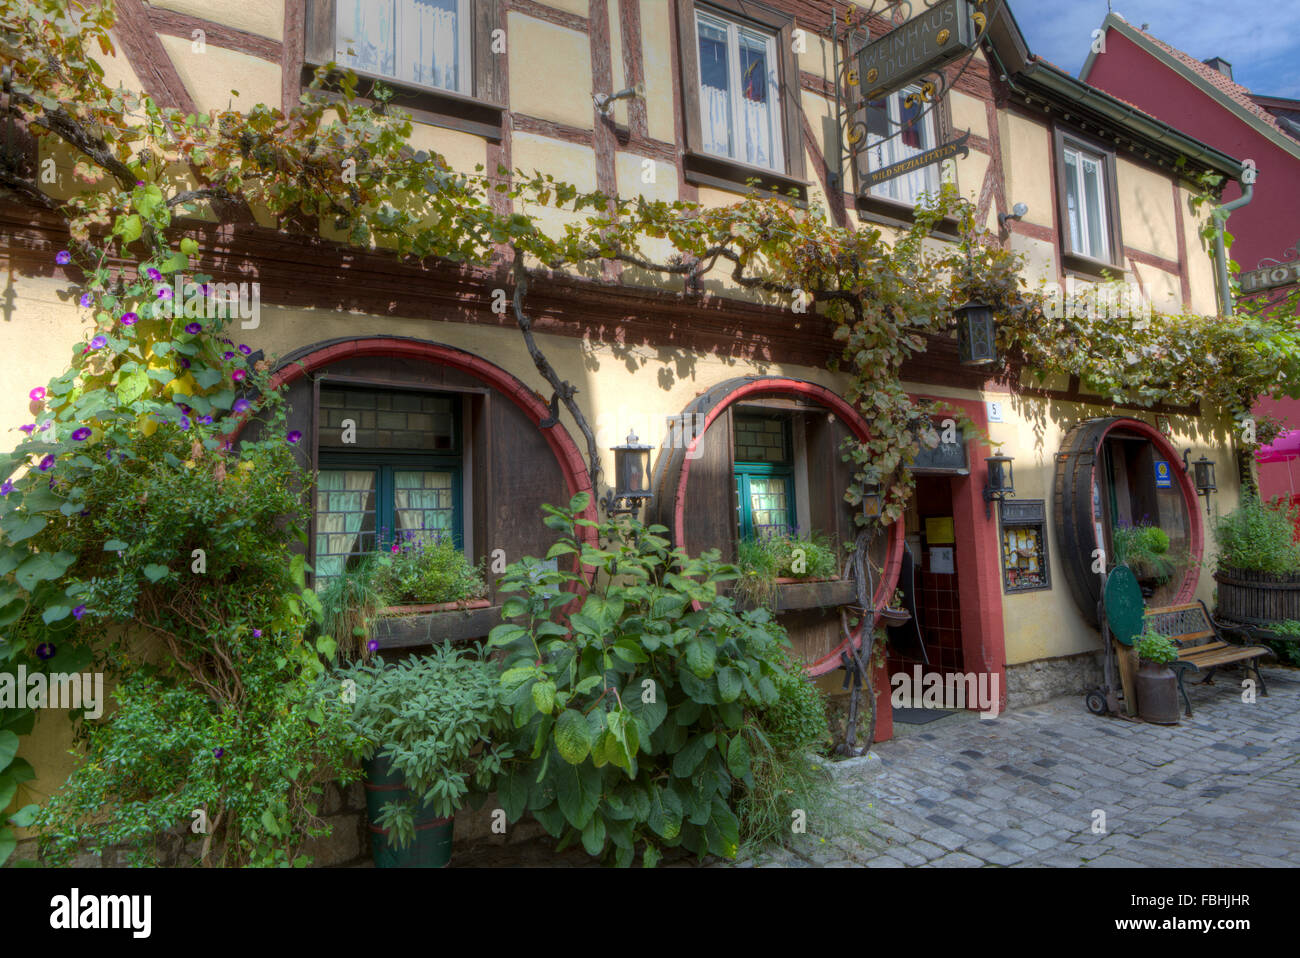 Wine tavern Dull in Sommerhausen at the Main, Lower Franconia, Bavaria, Germany, Europe - Stock Image